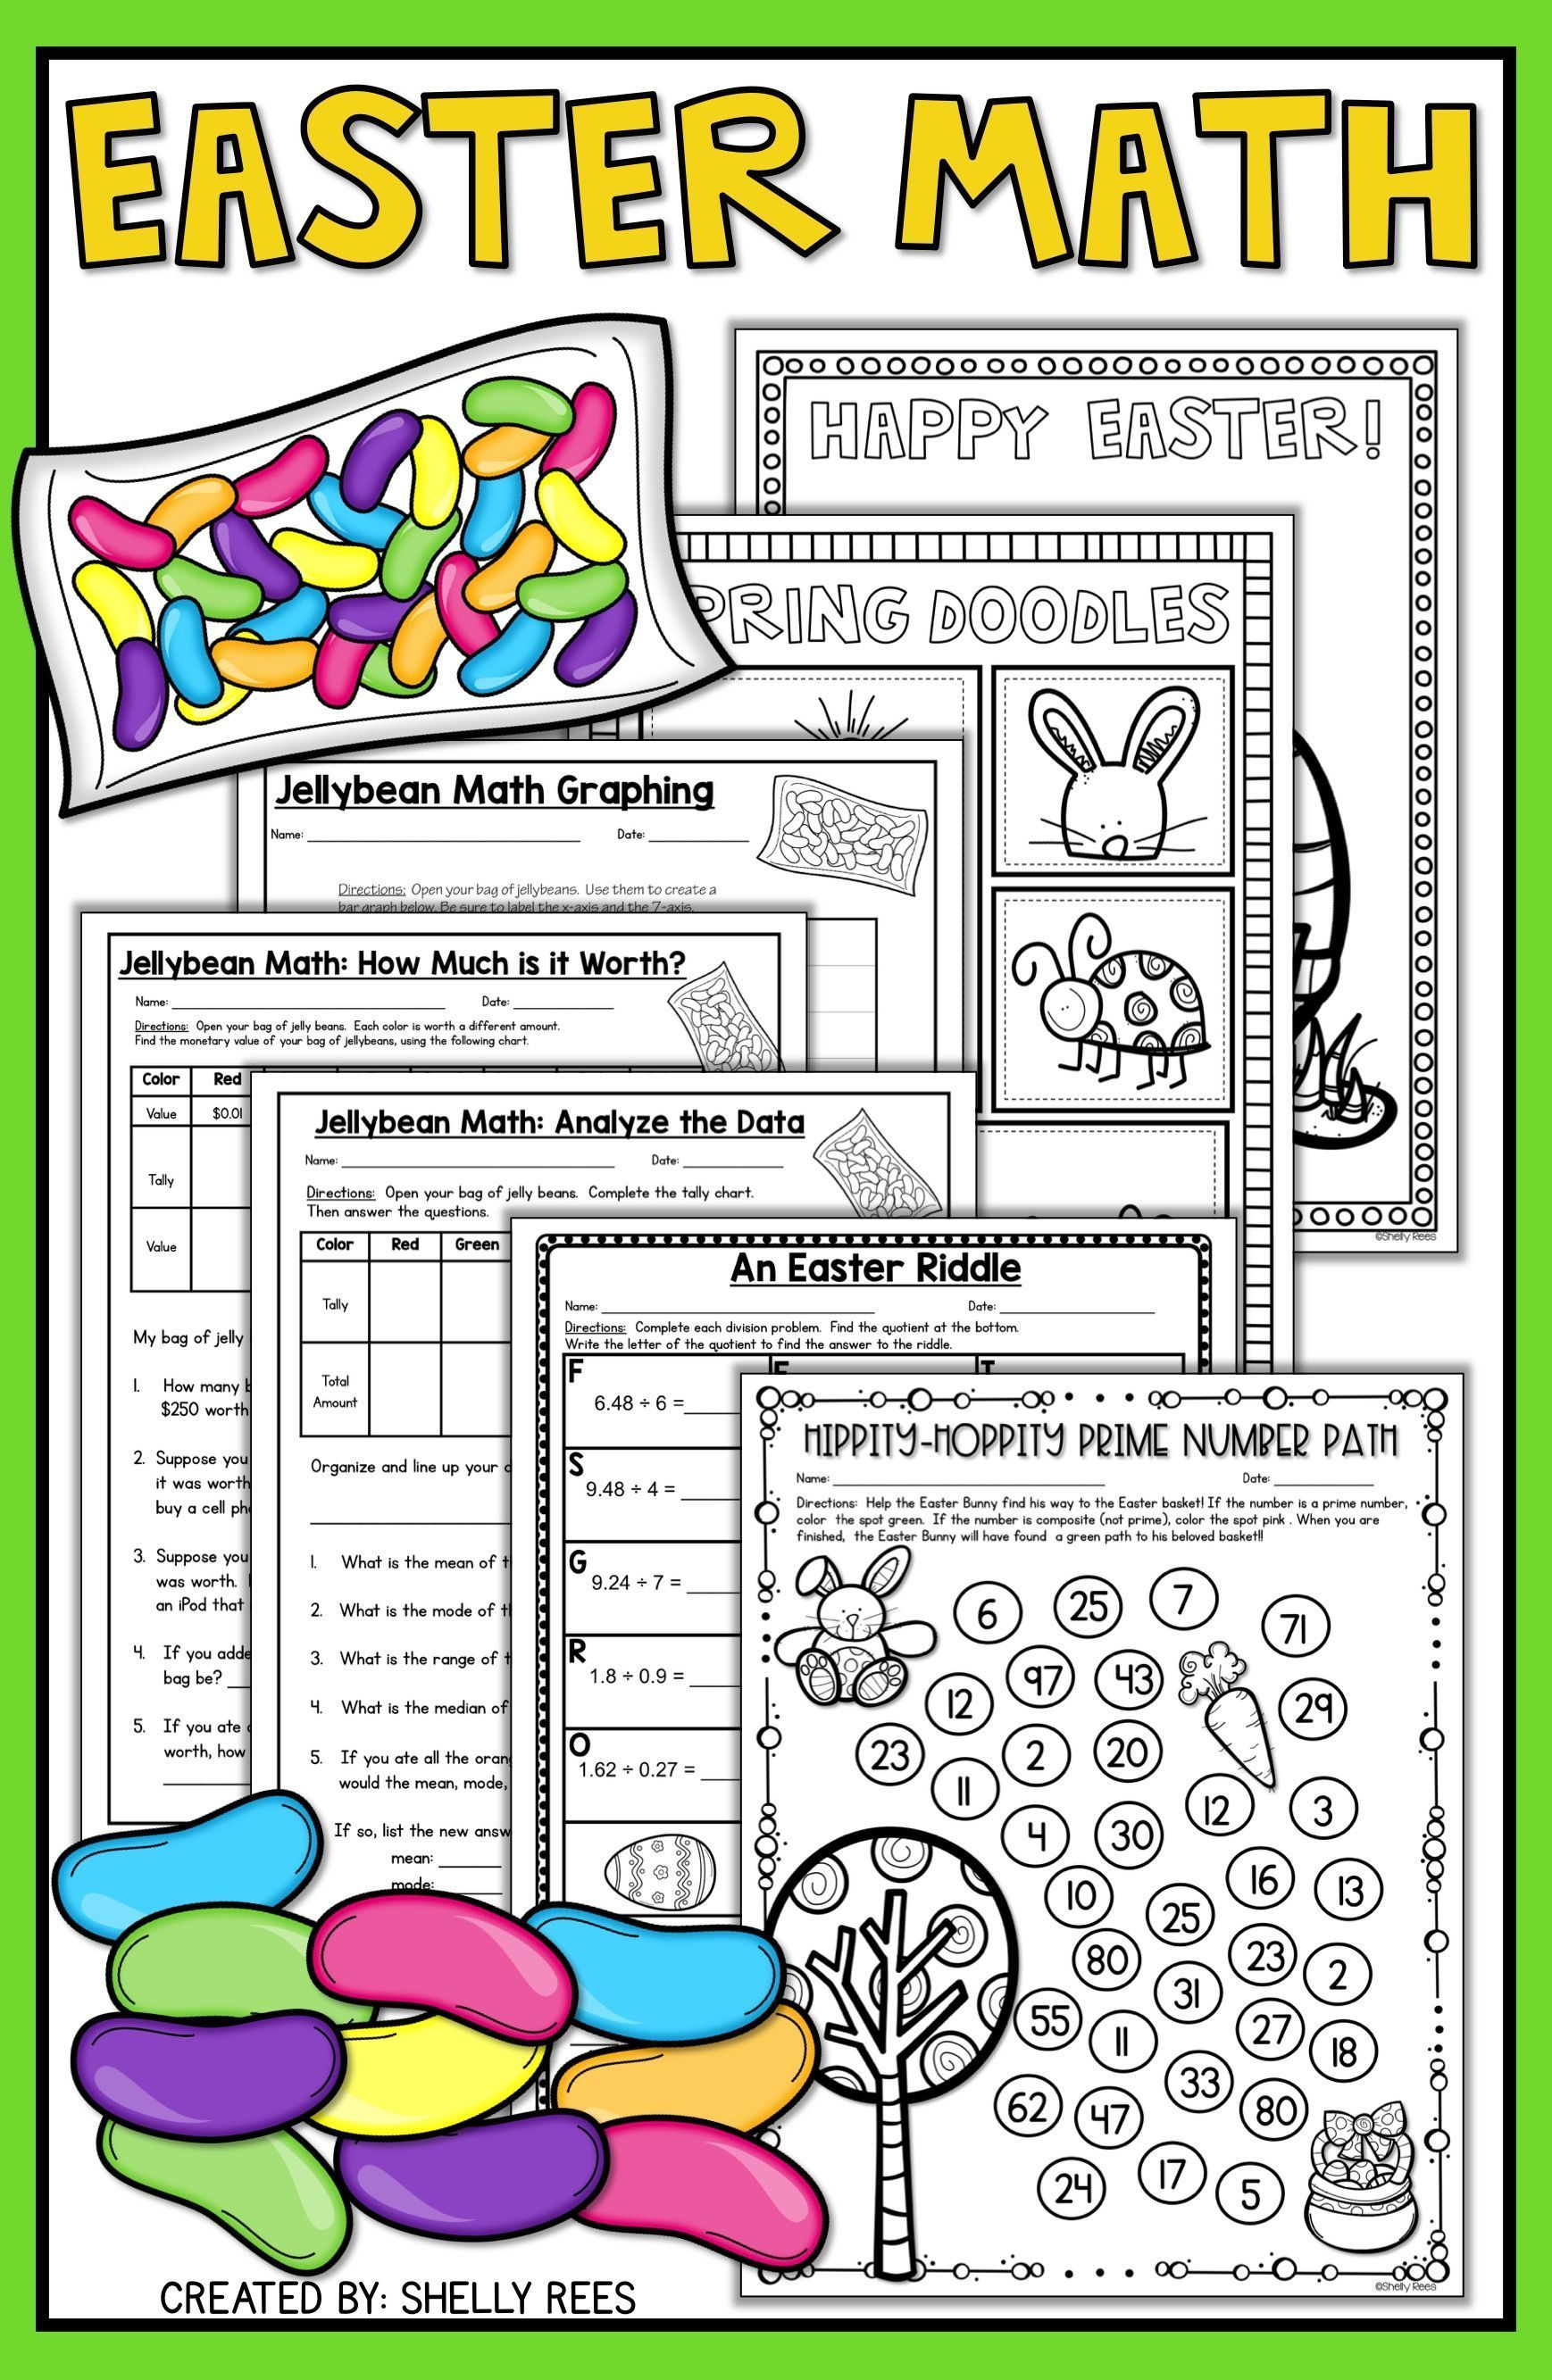 Fun Math Game Worksheet For Middle School